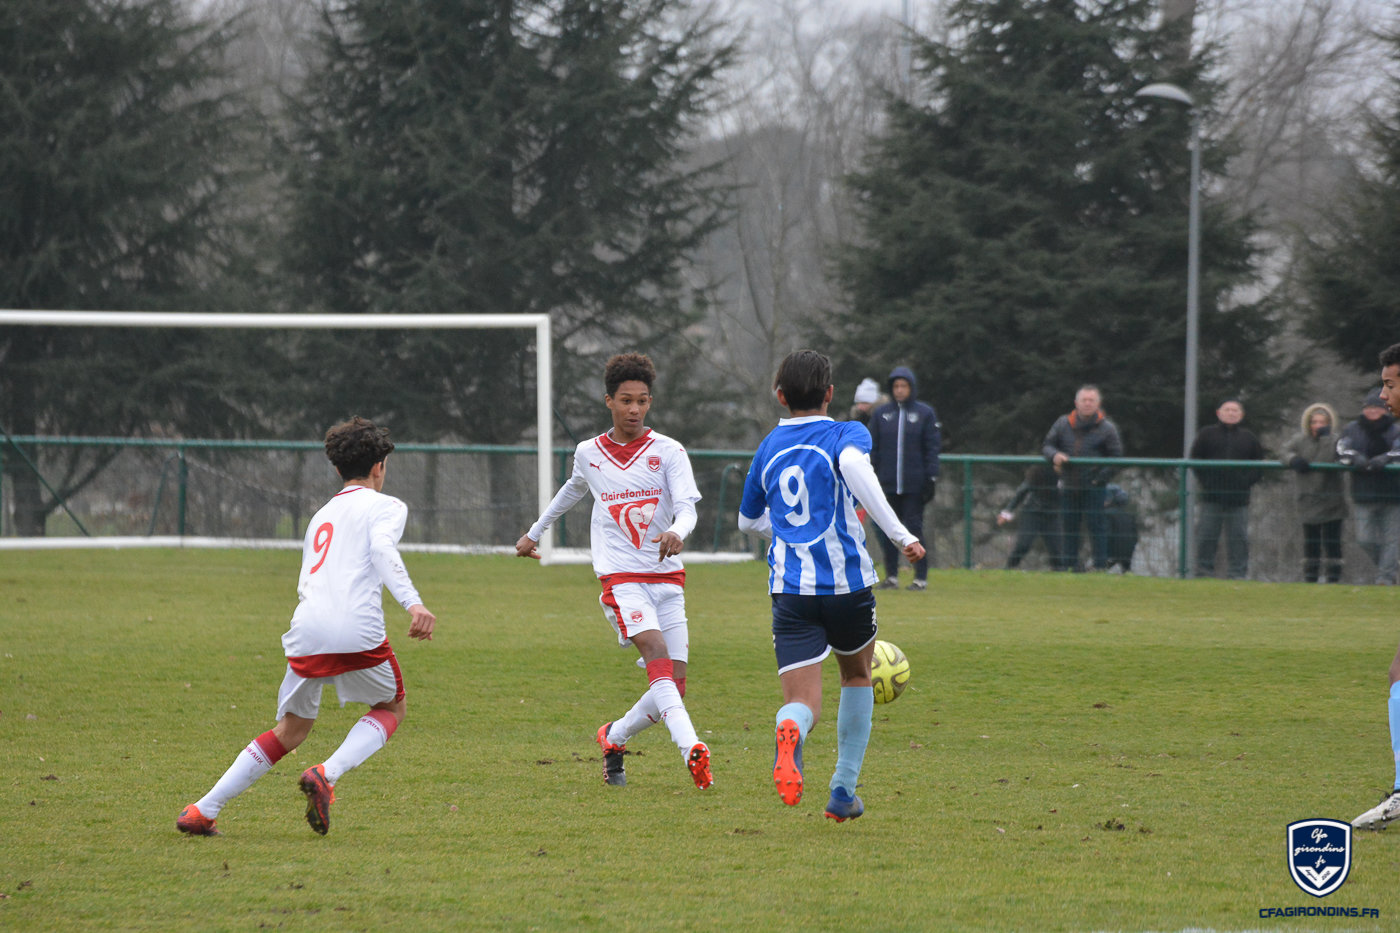 Score nul contre Coulouniex (1-1)